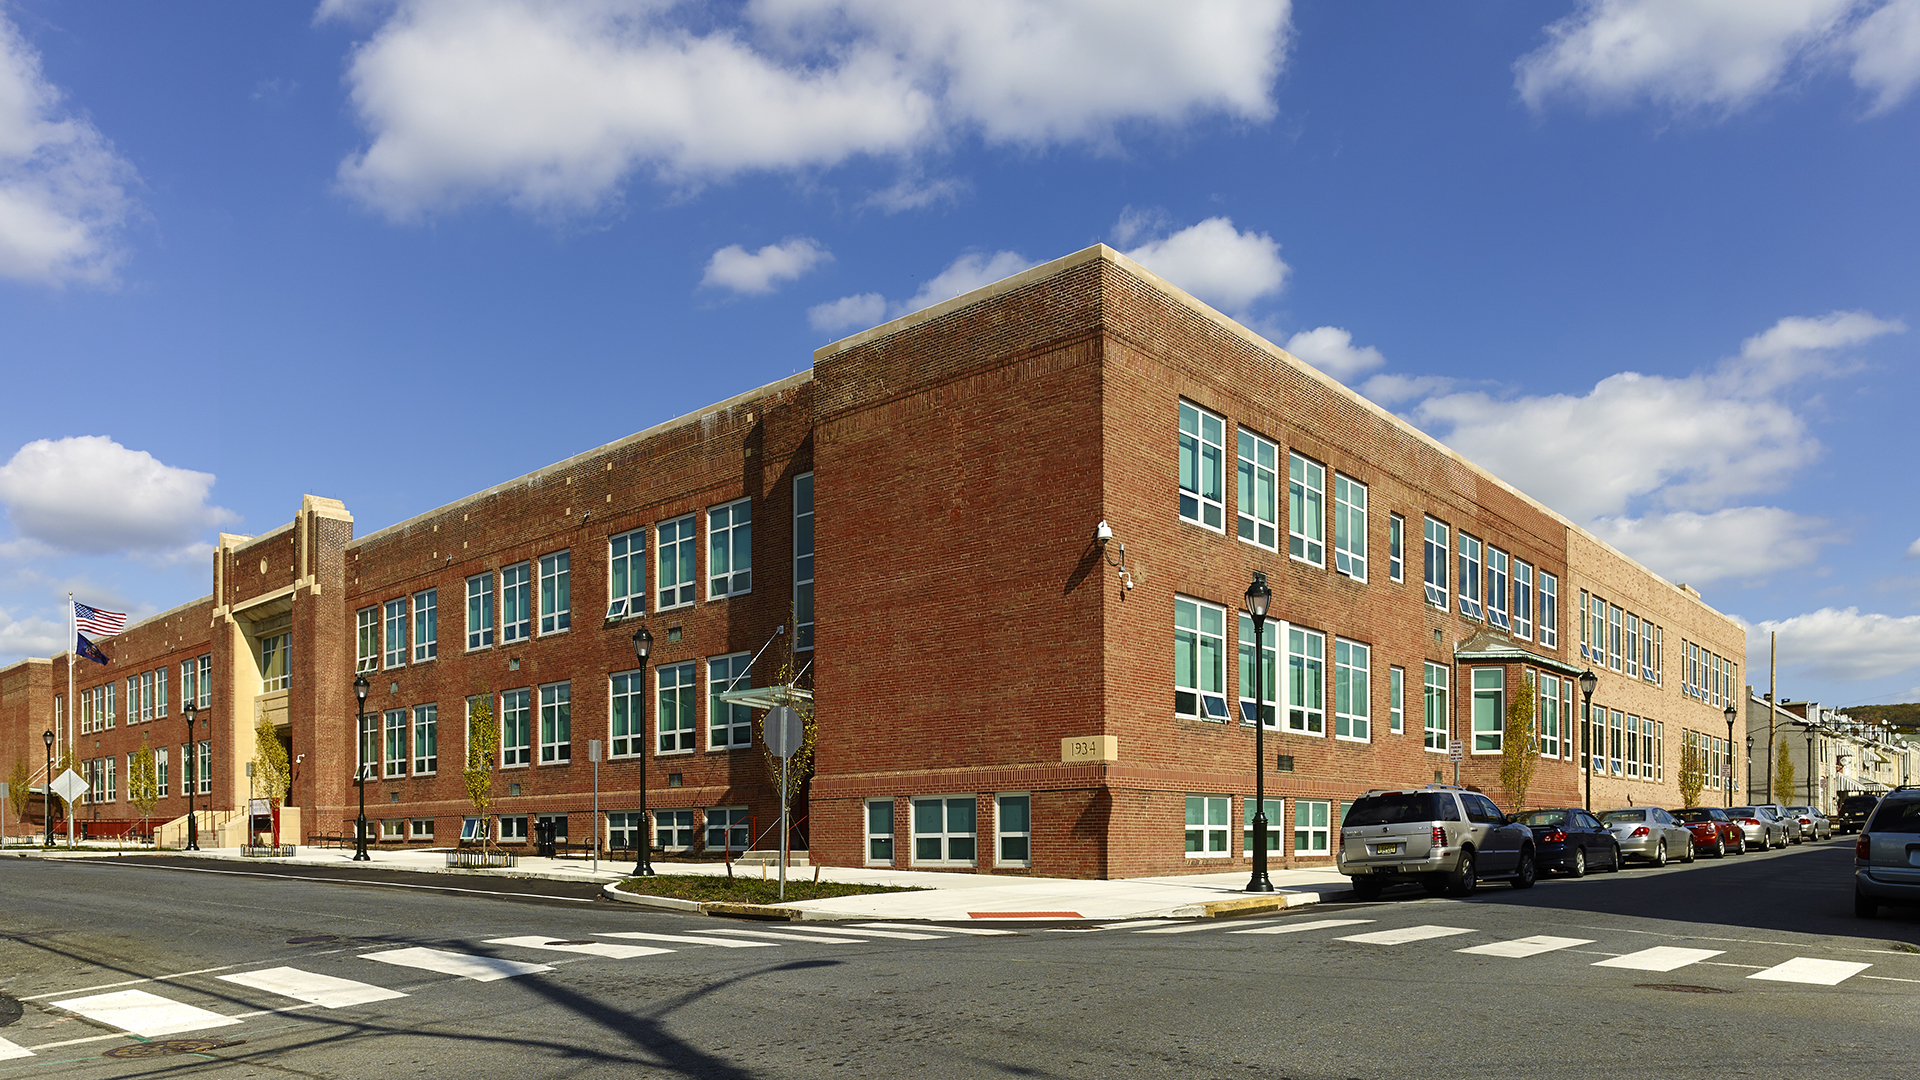 Exterior of Amanda E. Stout Elementary School and Benners Court for Reading School District